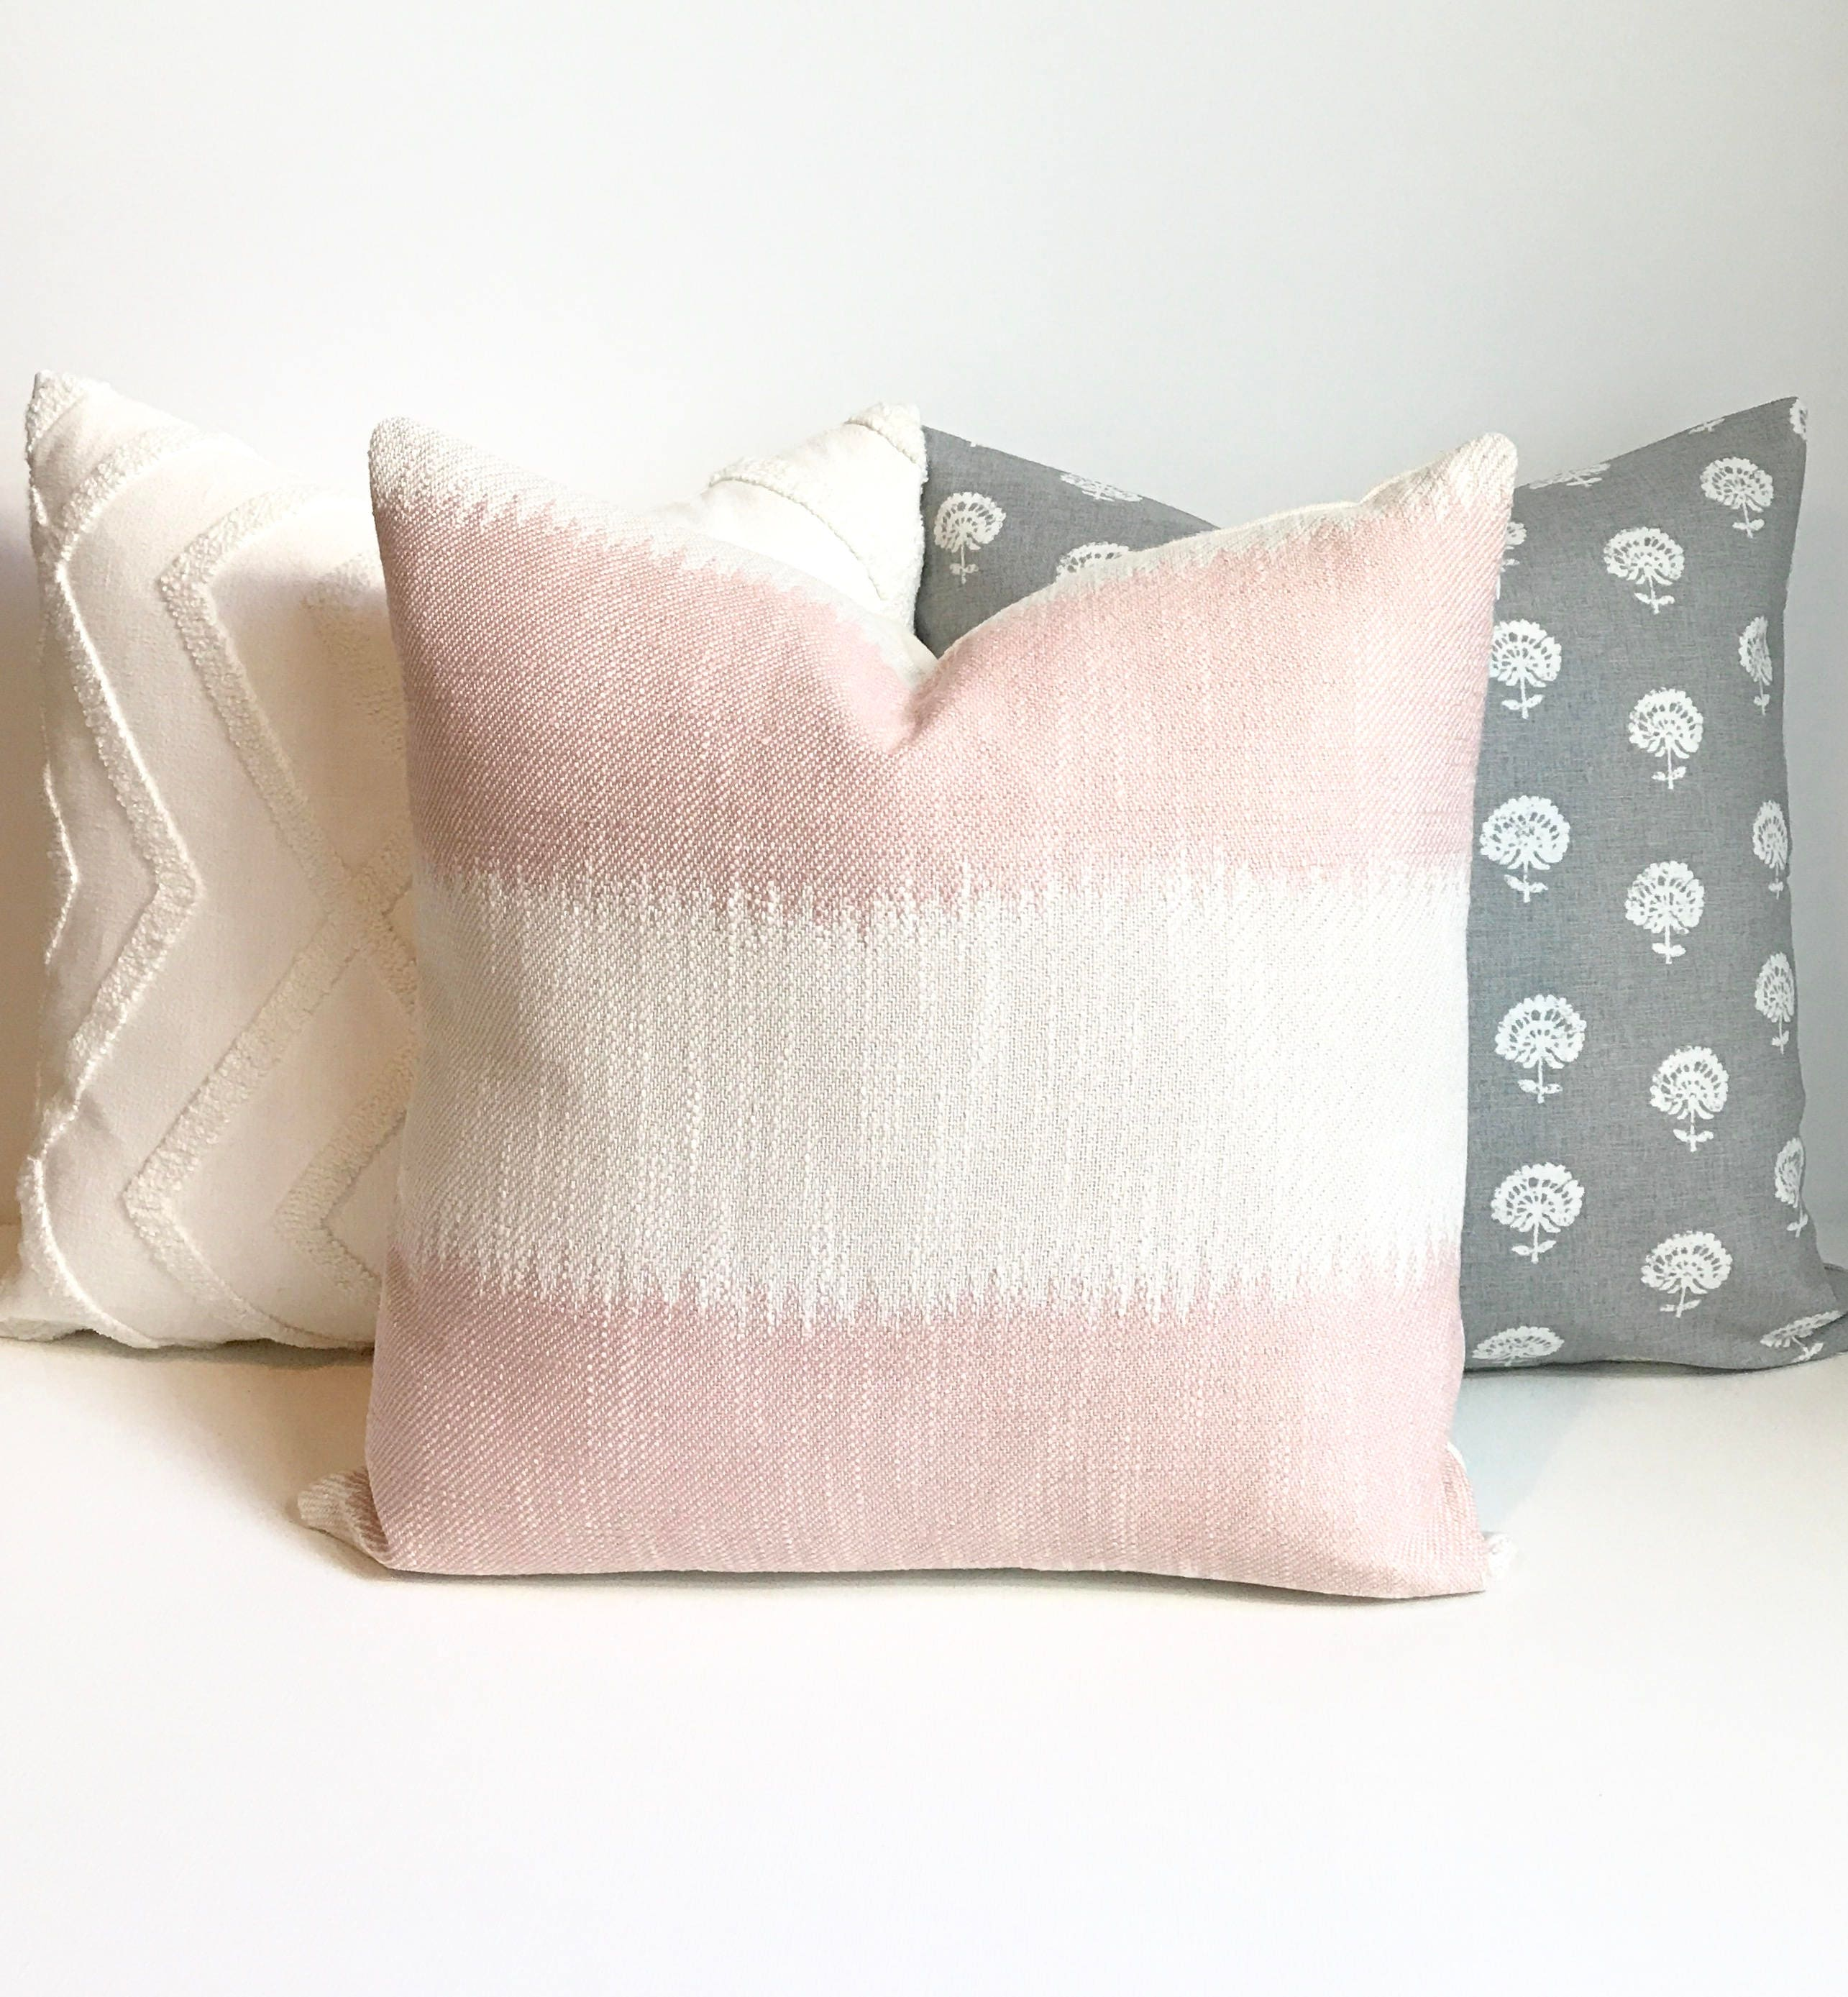 Blush Pink Decorative Pillow : Blush pink ikat striped boho Decorative Pillow Cover